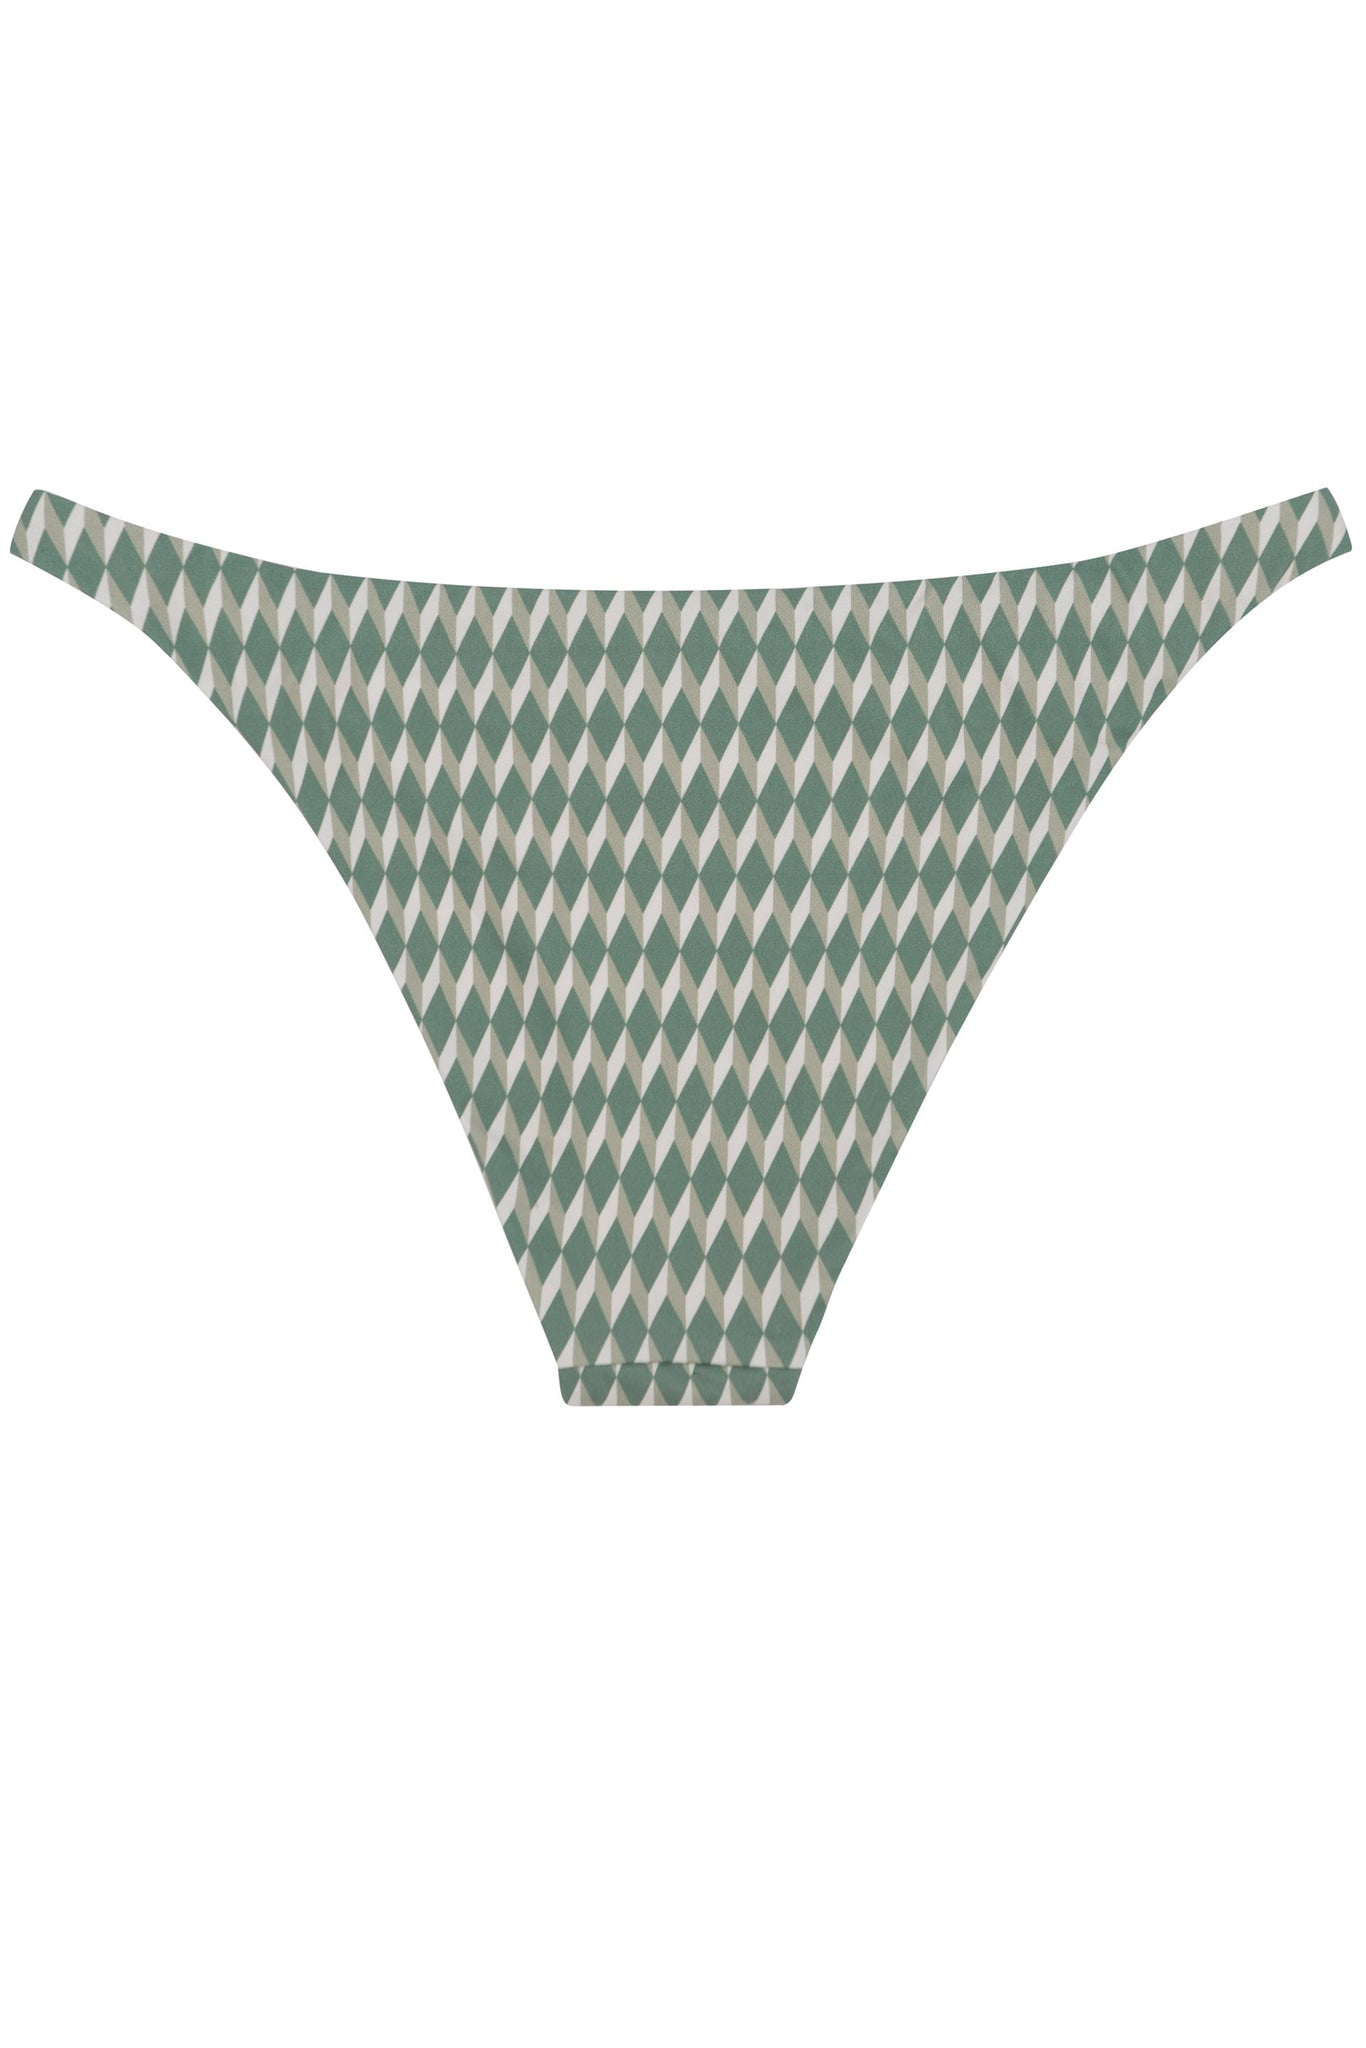 Ring bikini bottom in  green geometric sage print by Caroline af Rosenborg